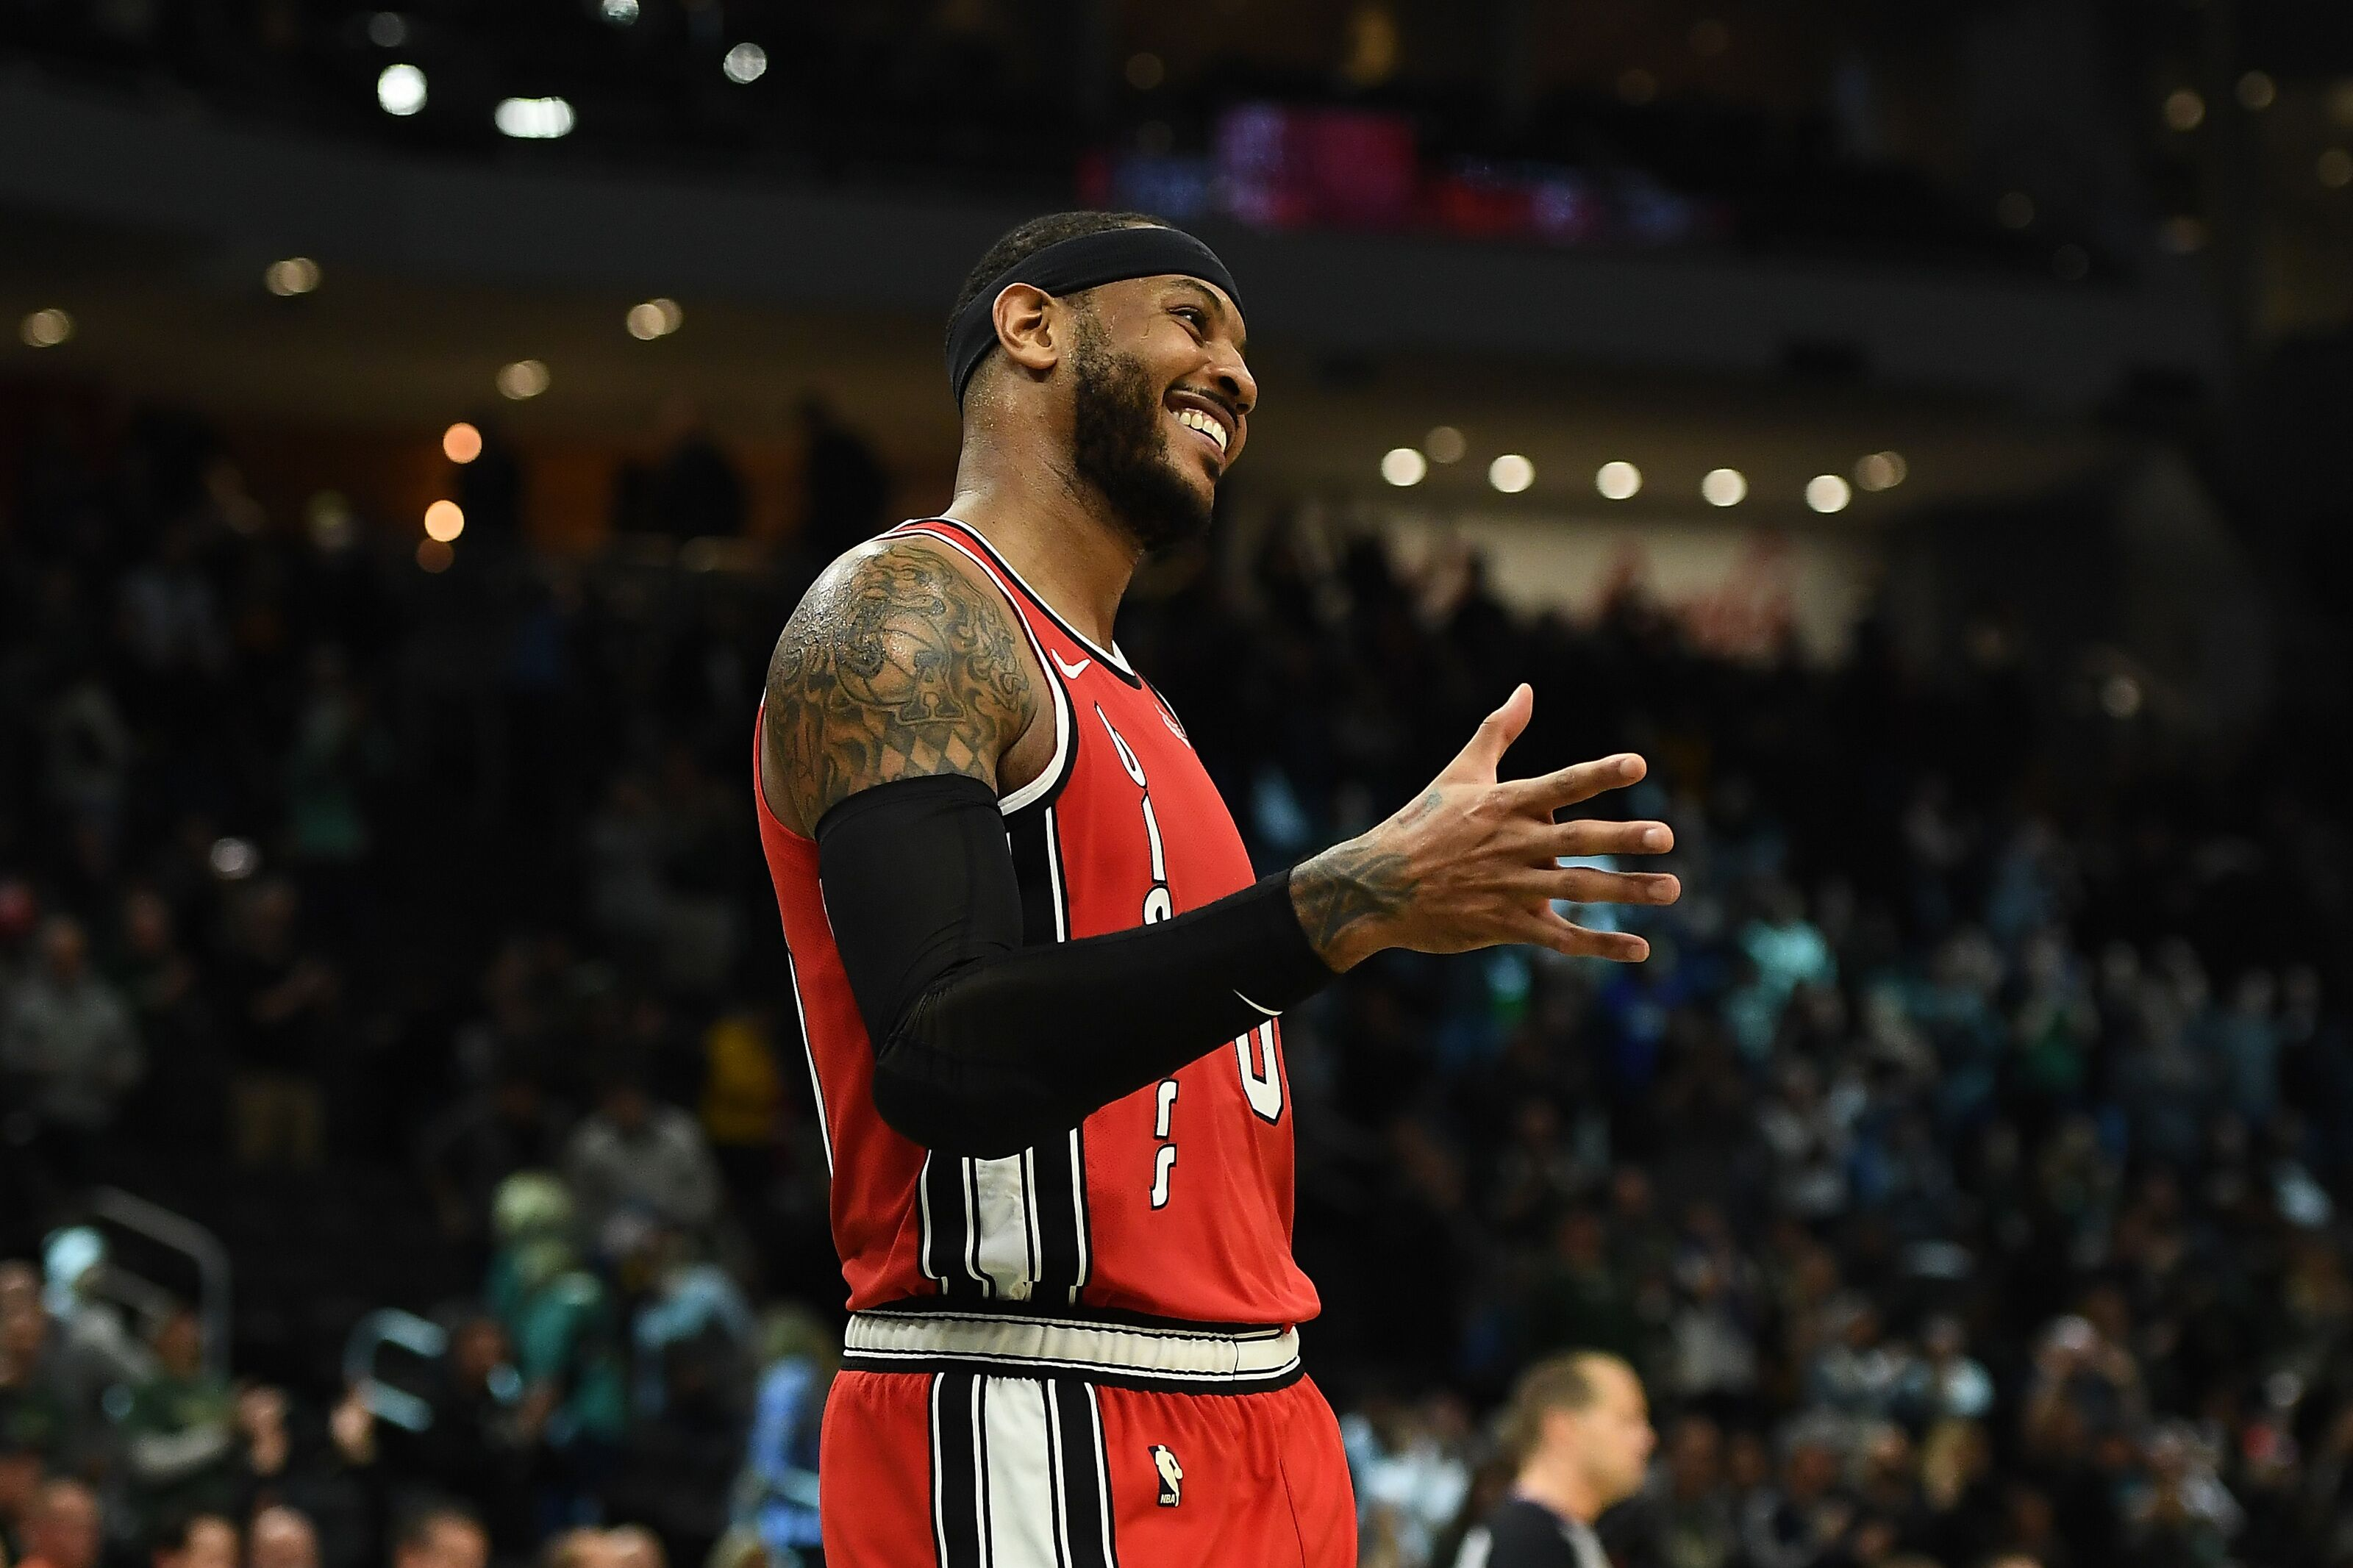 Portland Trail Blazers: Carmelo Anthony moves into 18th place on all-time scoring list